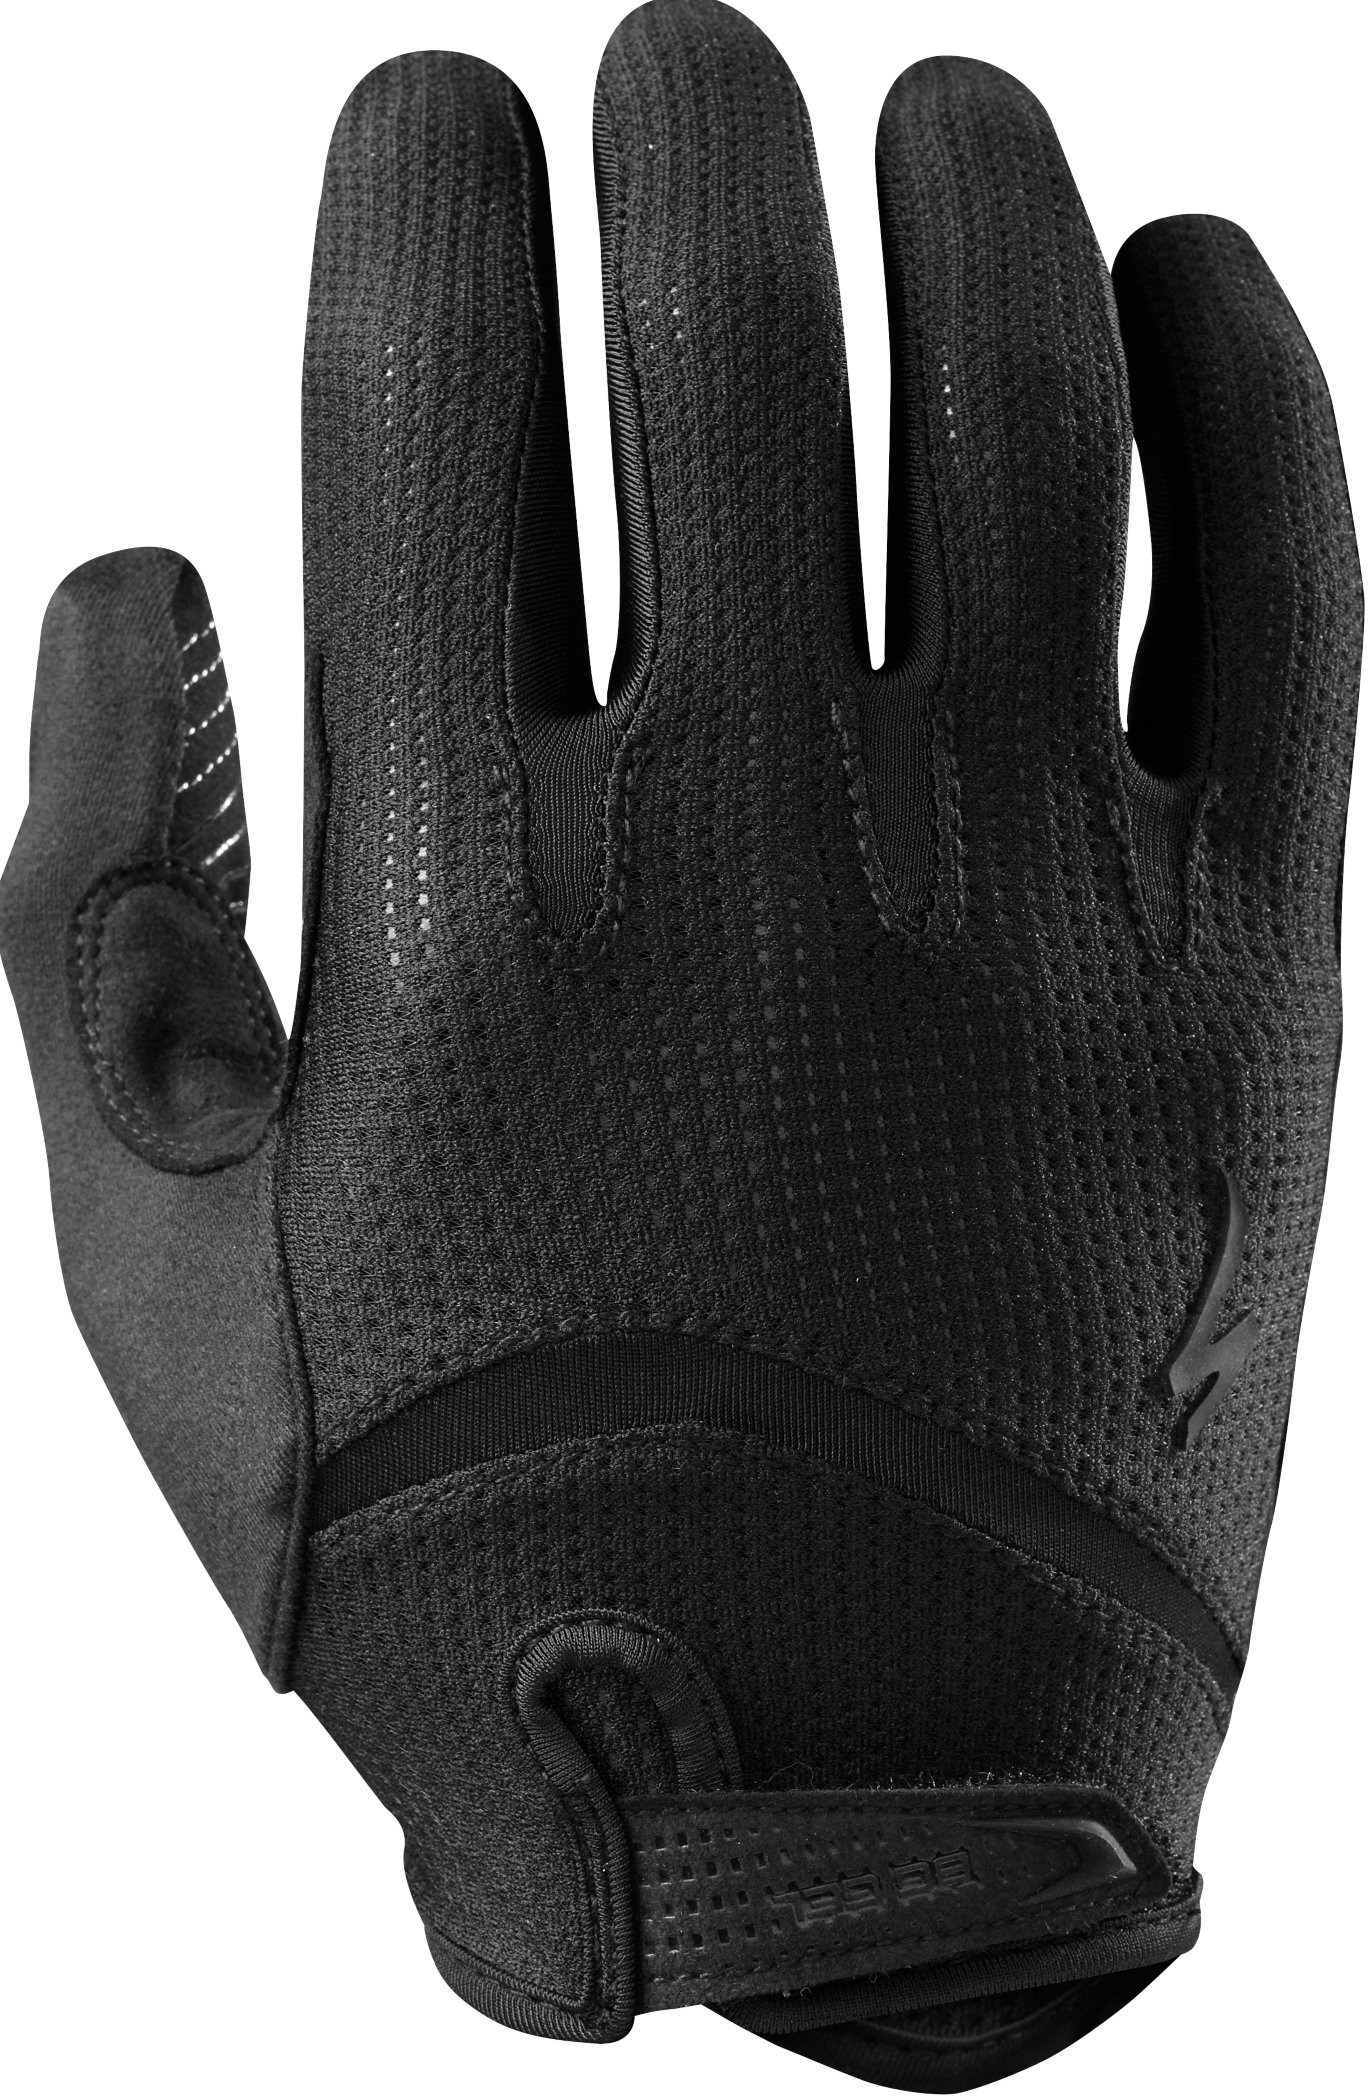 SPECIALIZED BG GEL GLOVE LF BLK/BLK L - Alpha Bikes